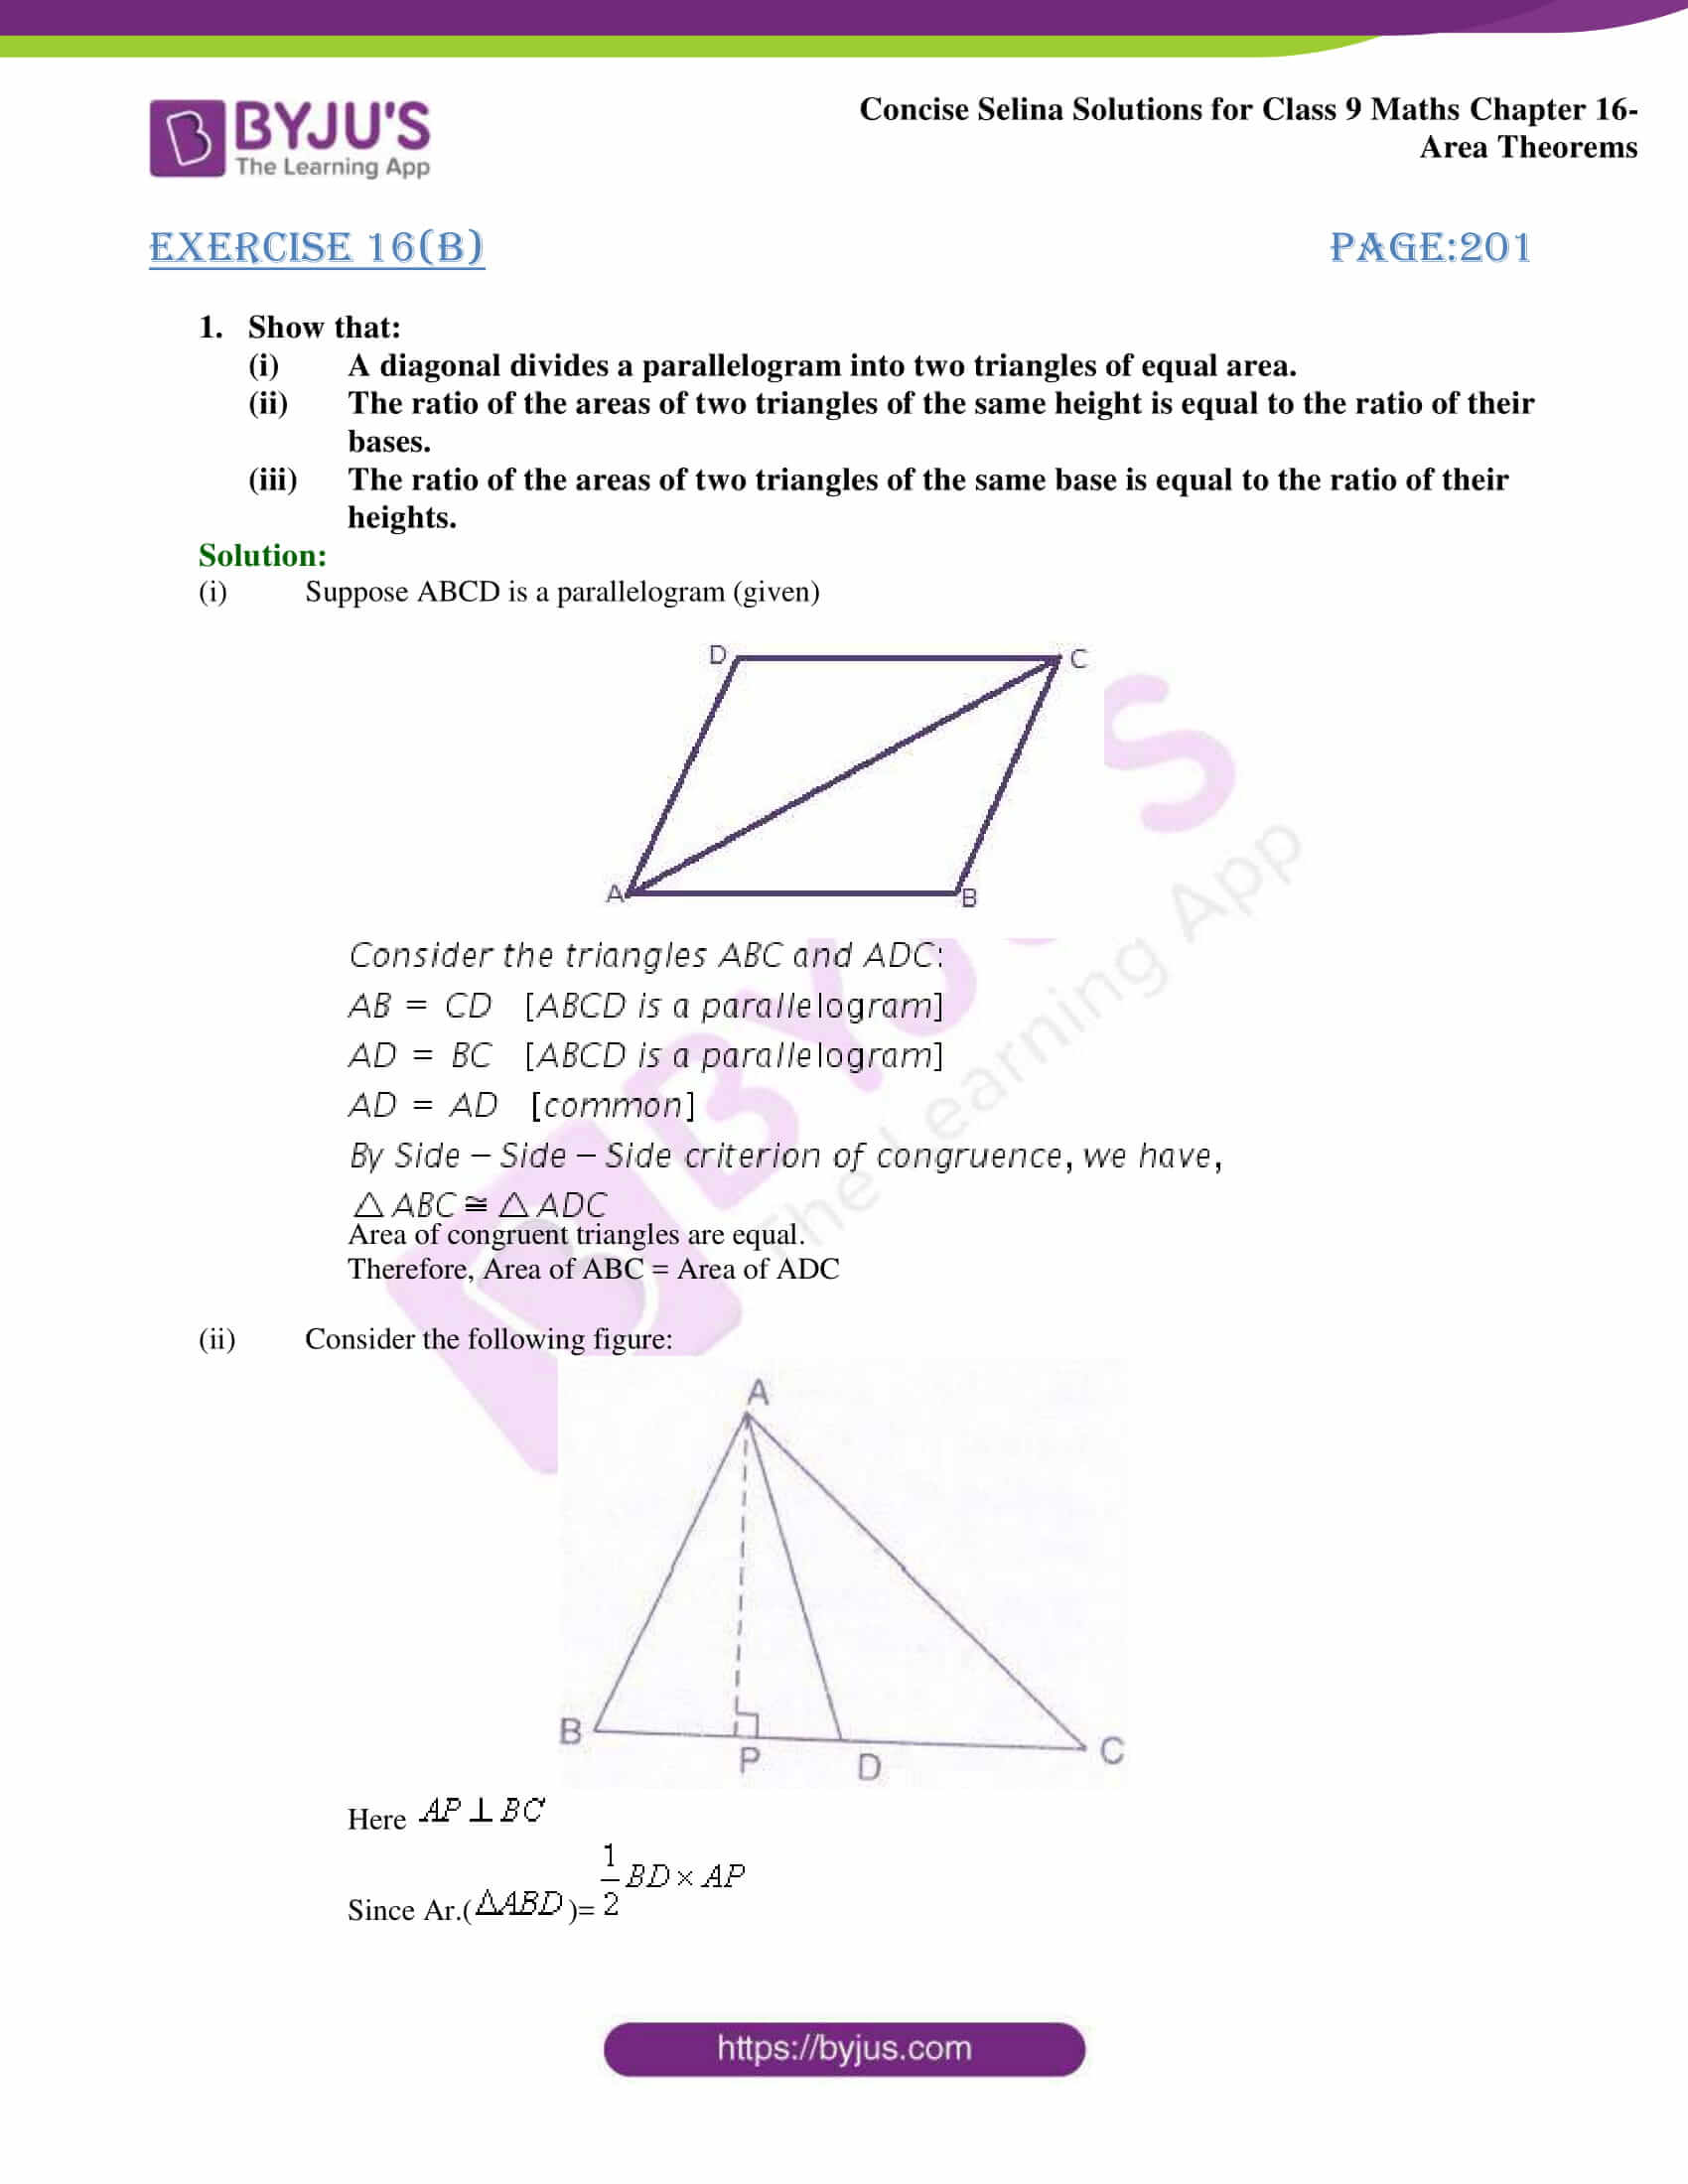 Concise Selina Solutions Class 9 Maths Chapter 16 Area Theorems part 16